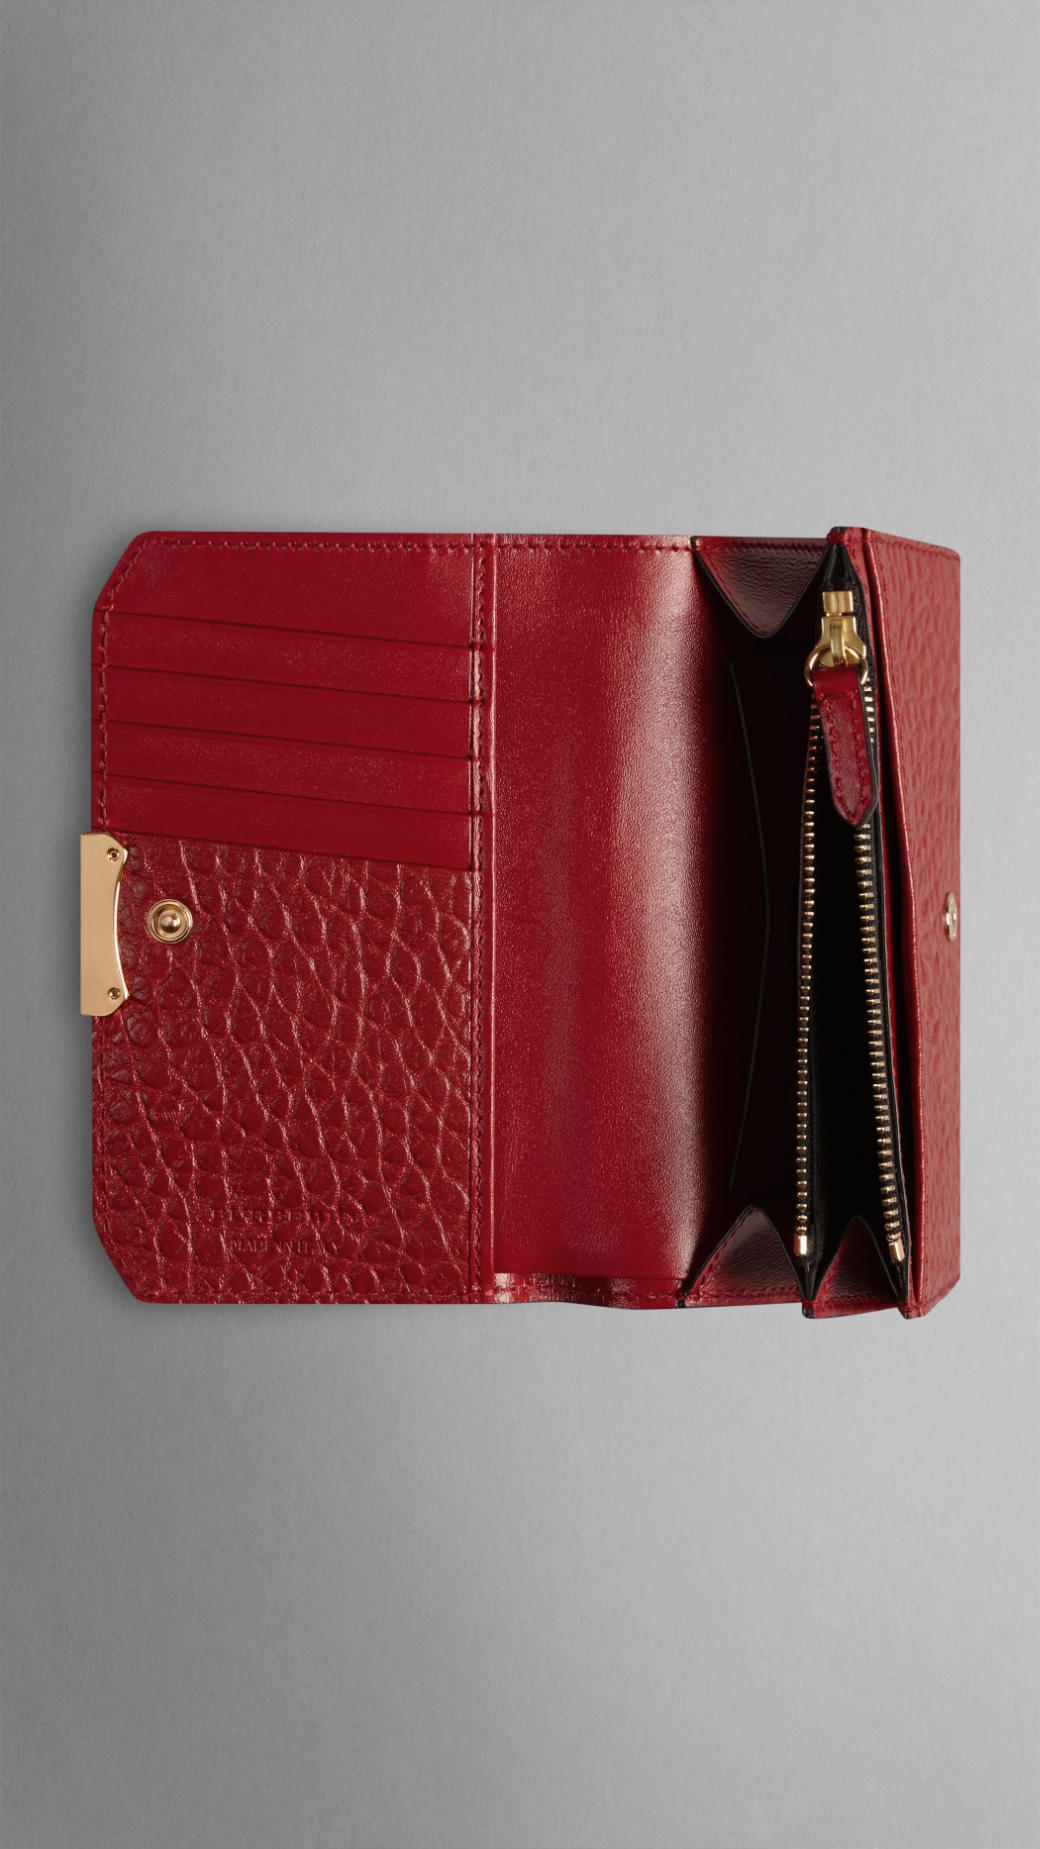 85a2713ce97f Burberry Military Red Wallet | Stanford Center for Opportunity ...